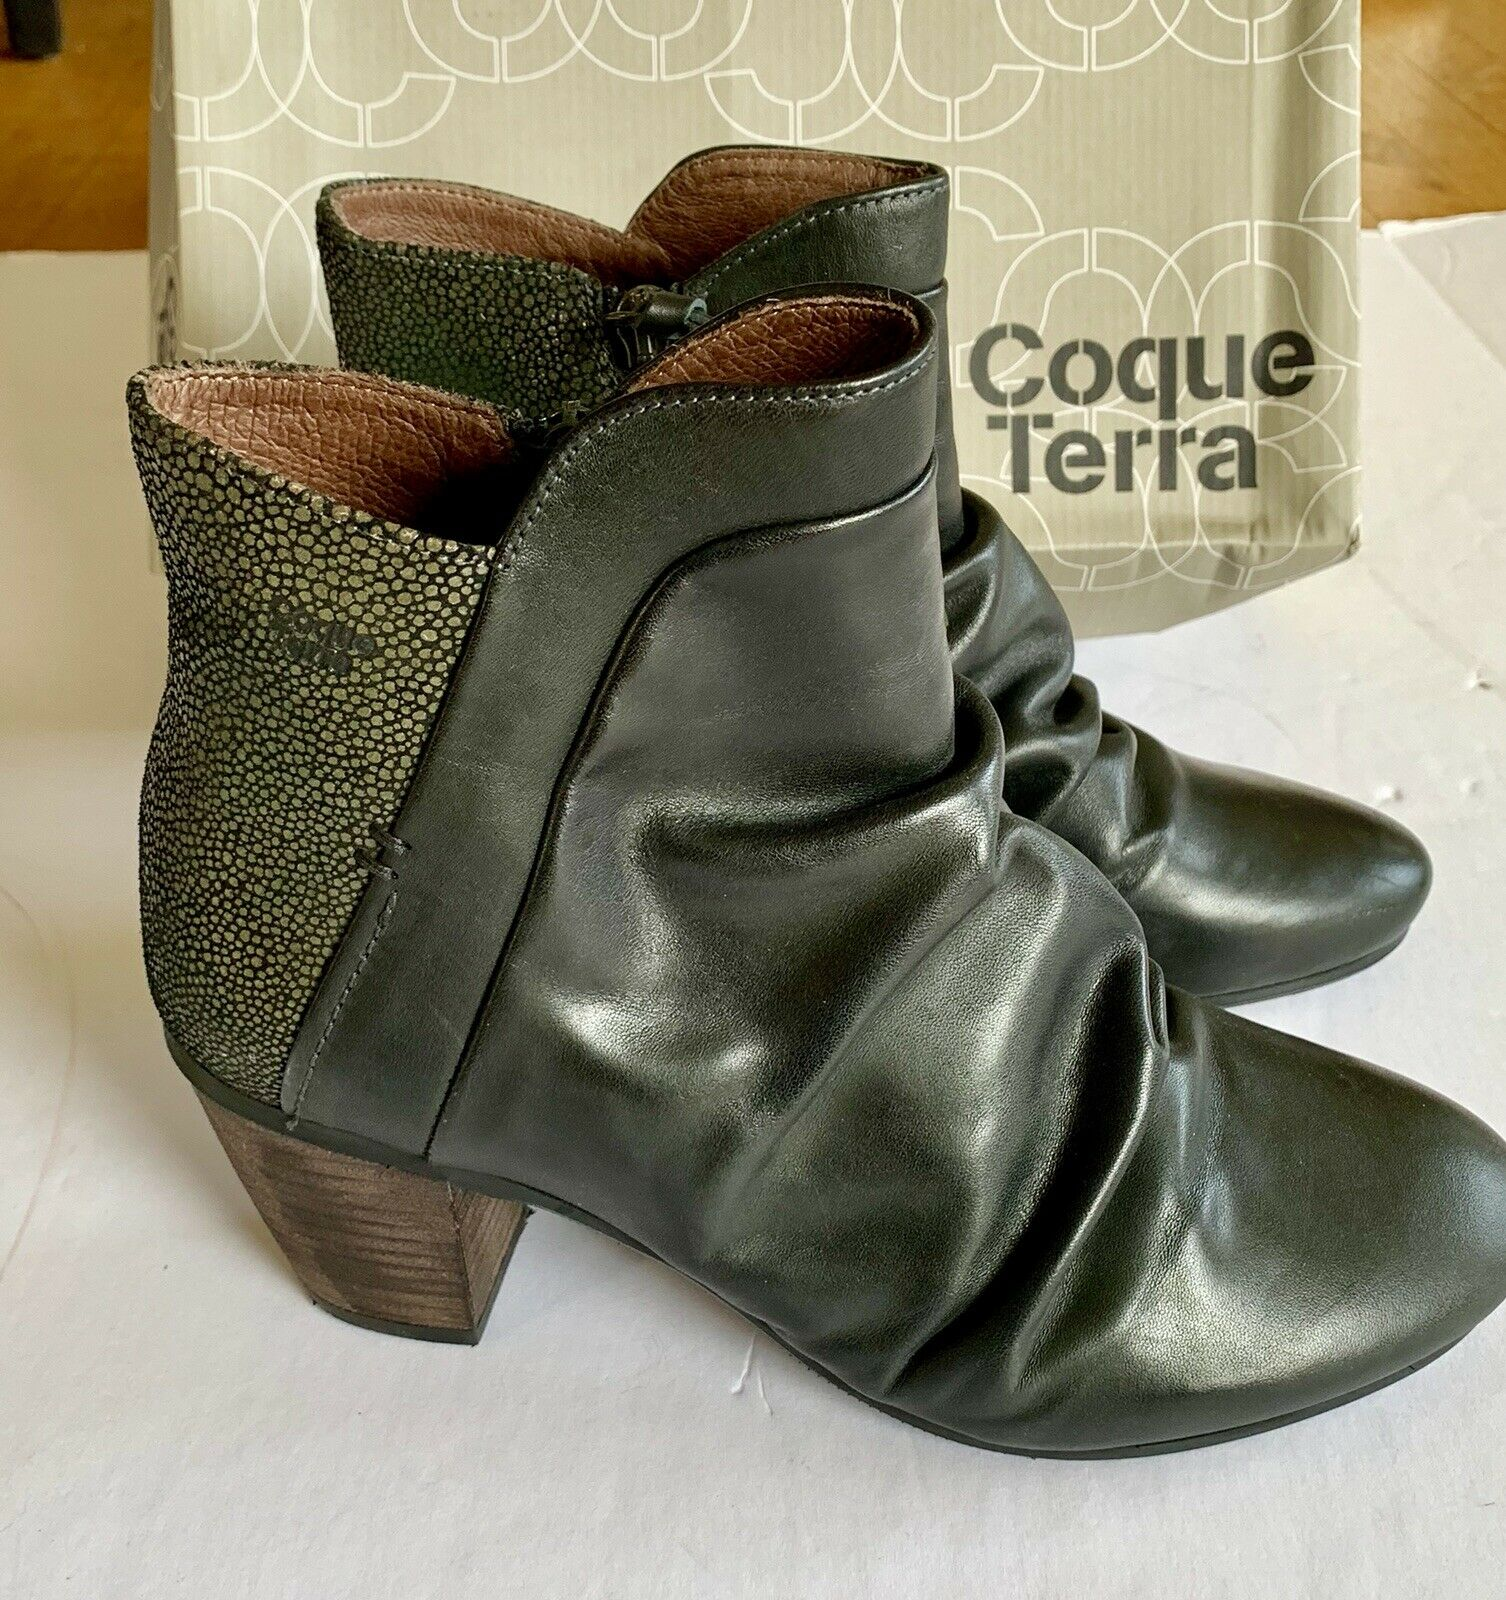 Coque Terra Ankle Boot Slouch Bootie Anthropology Snake Skin Size 39 8.5